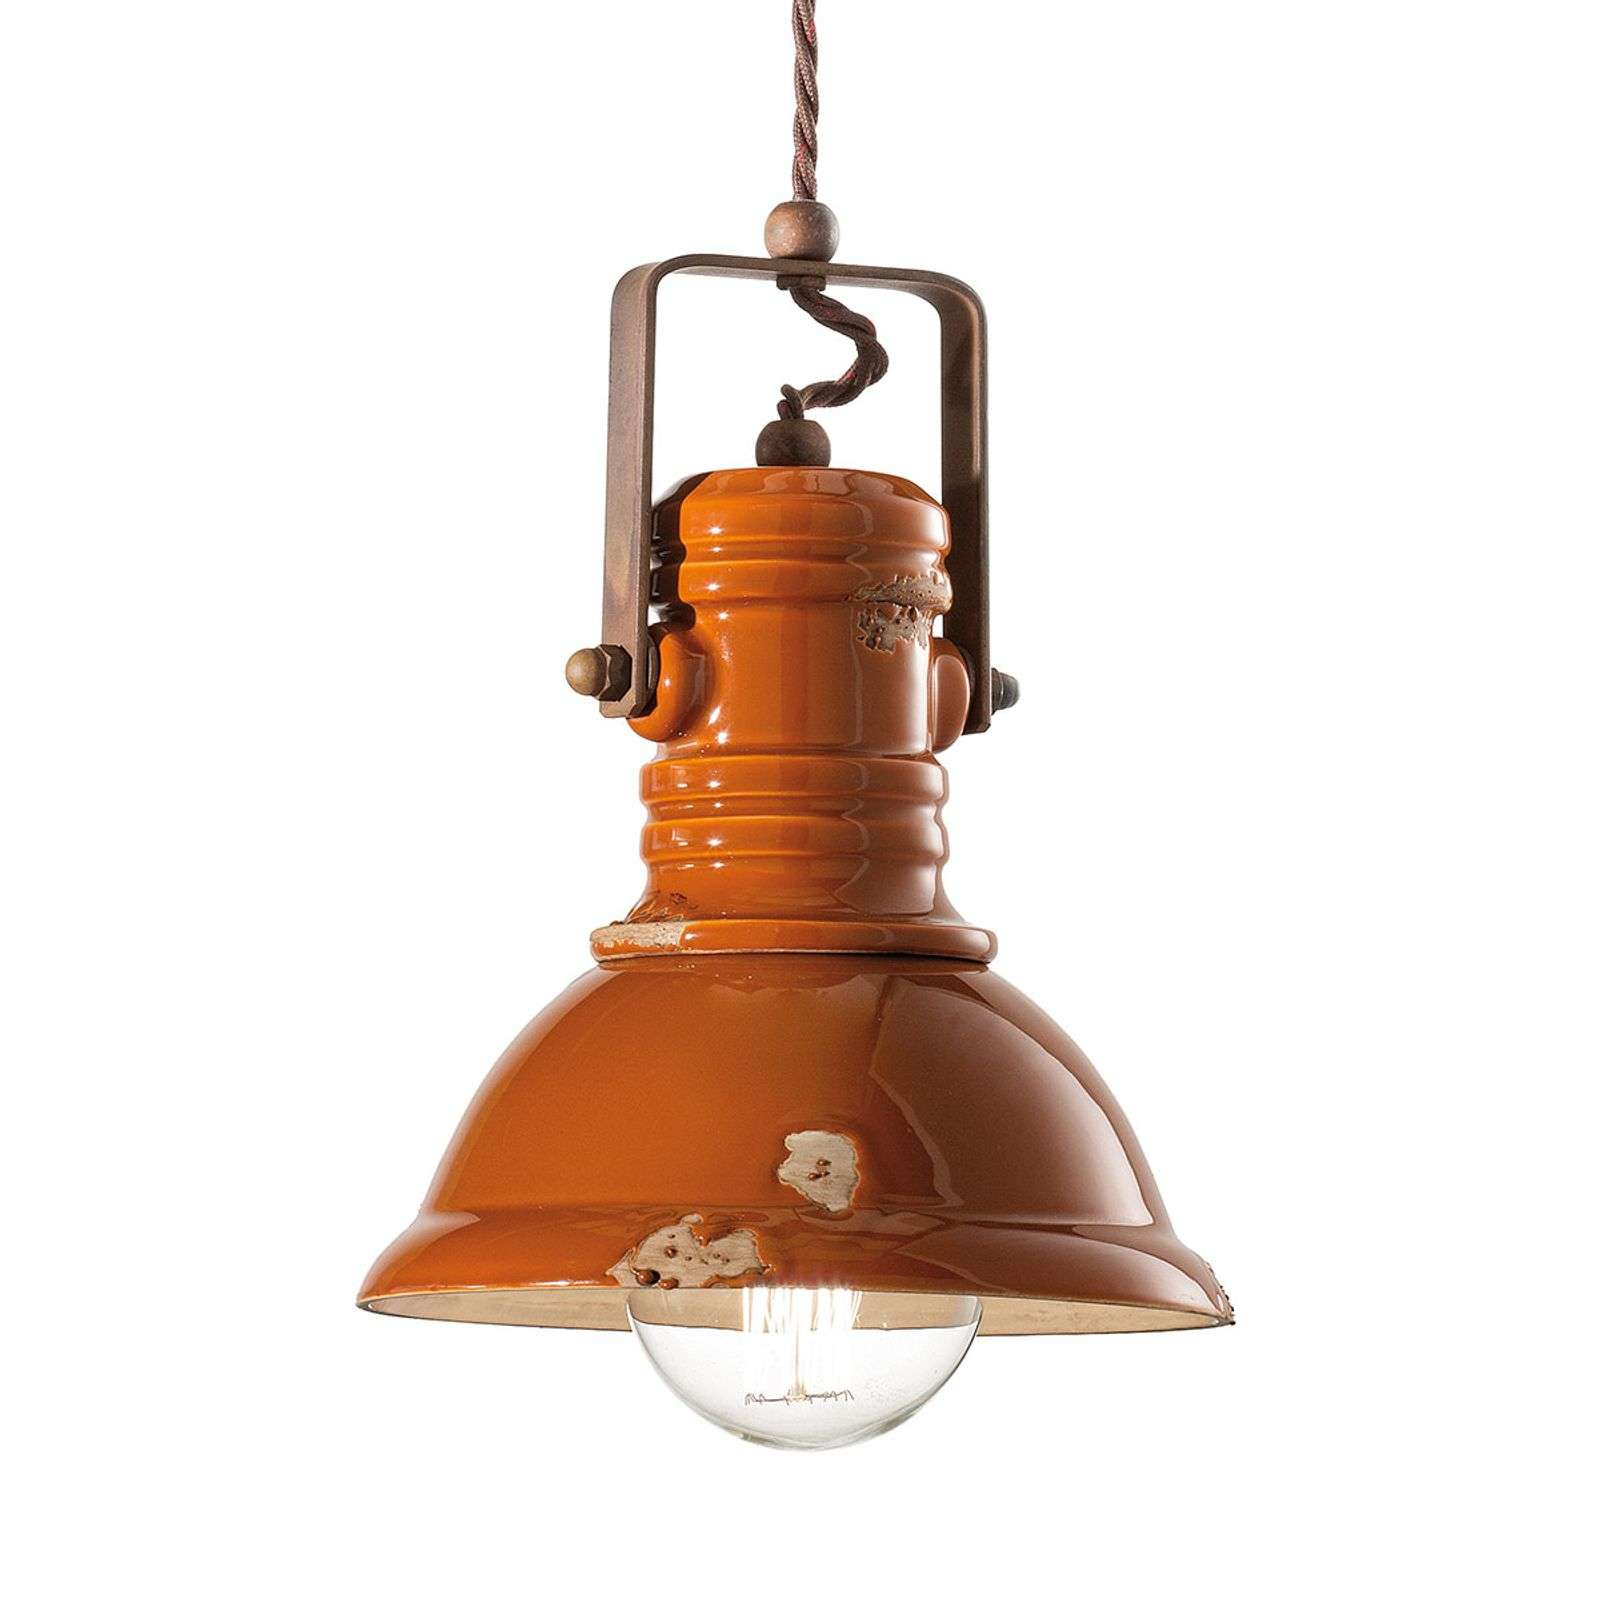 Suspension C1691 au design industriel orange